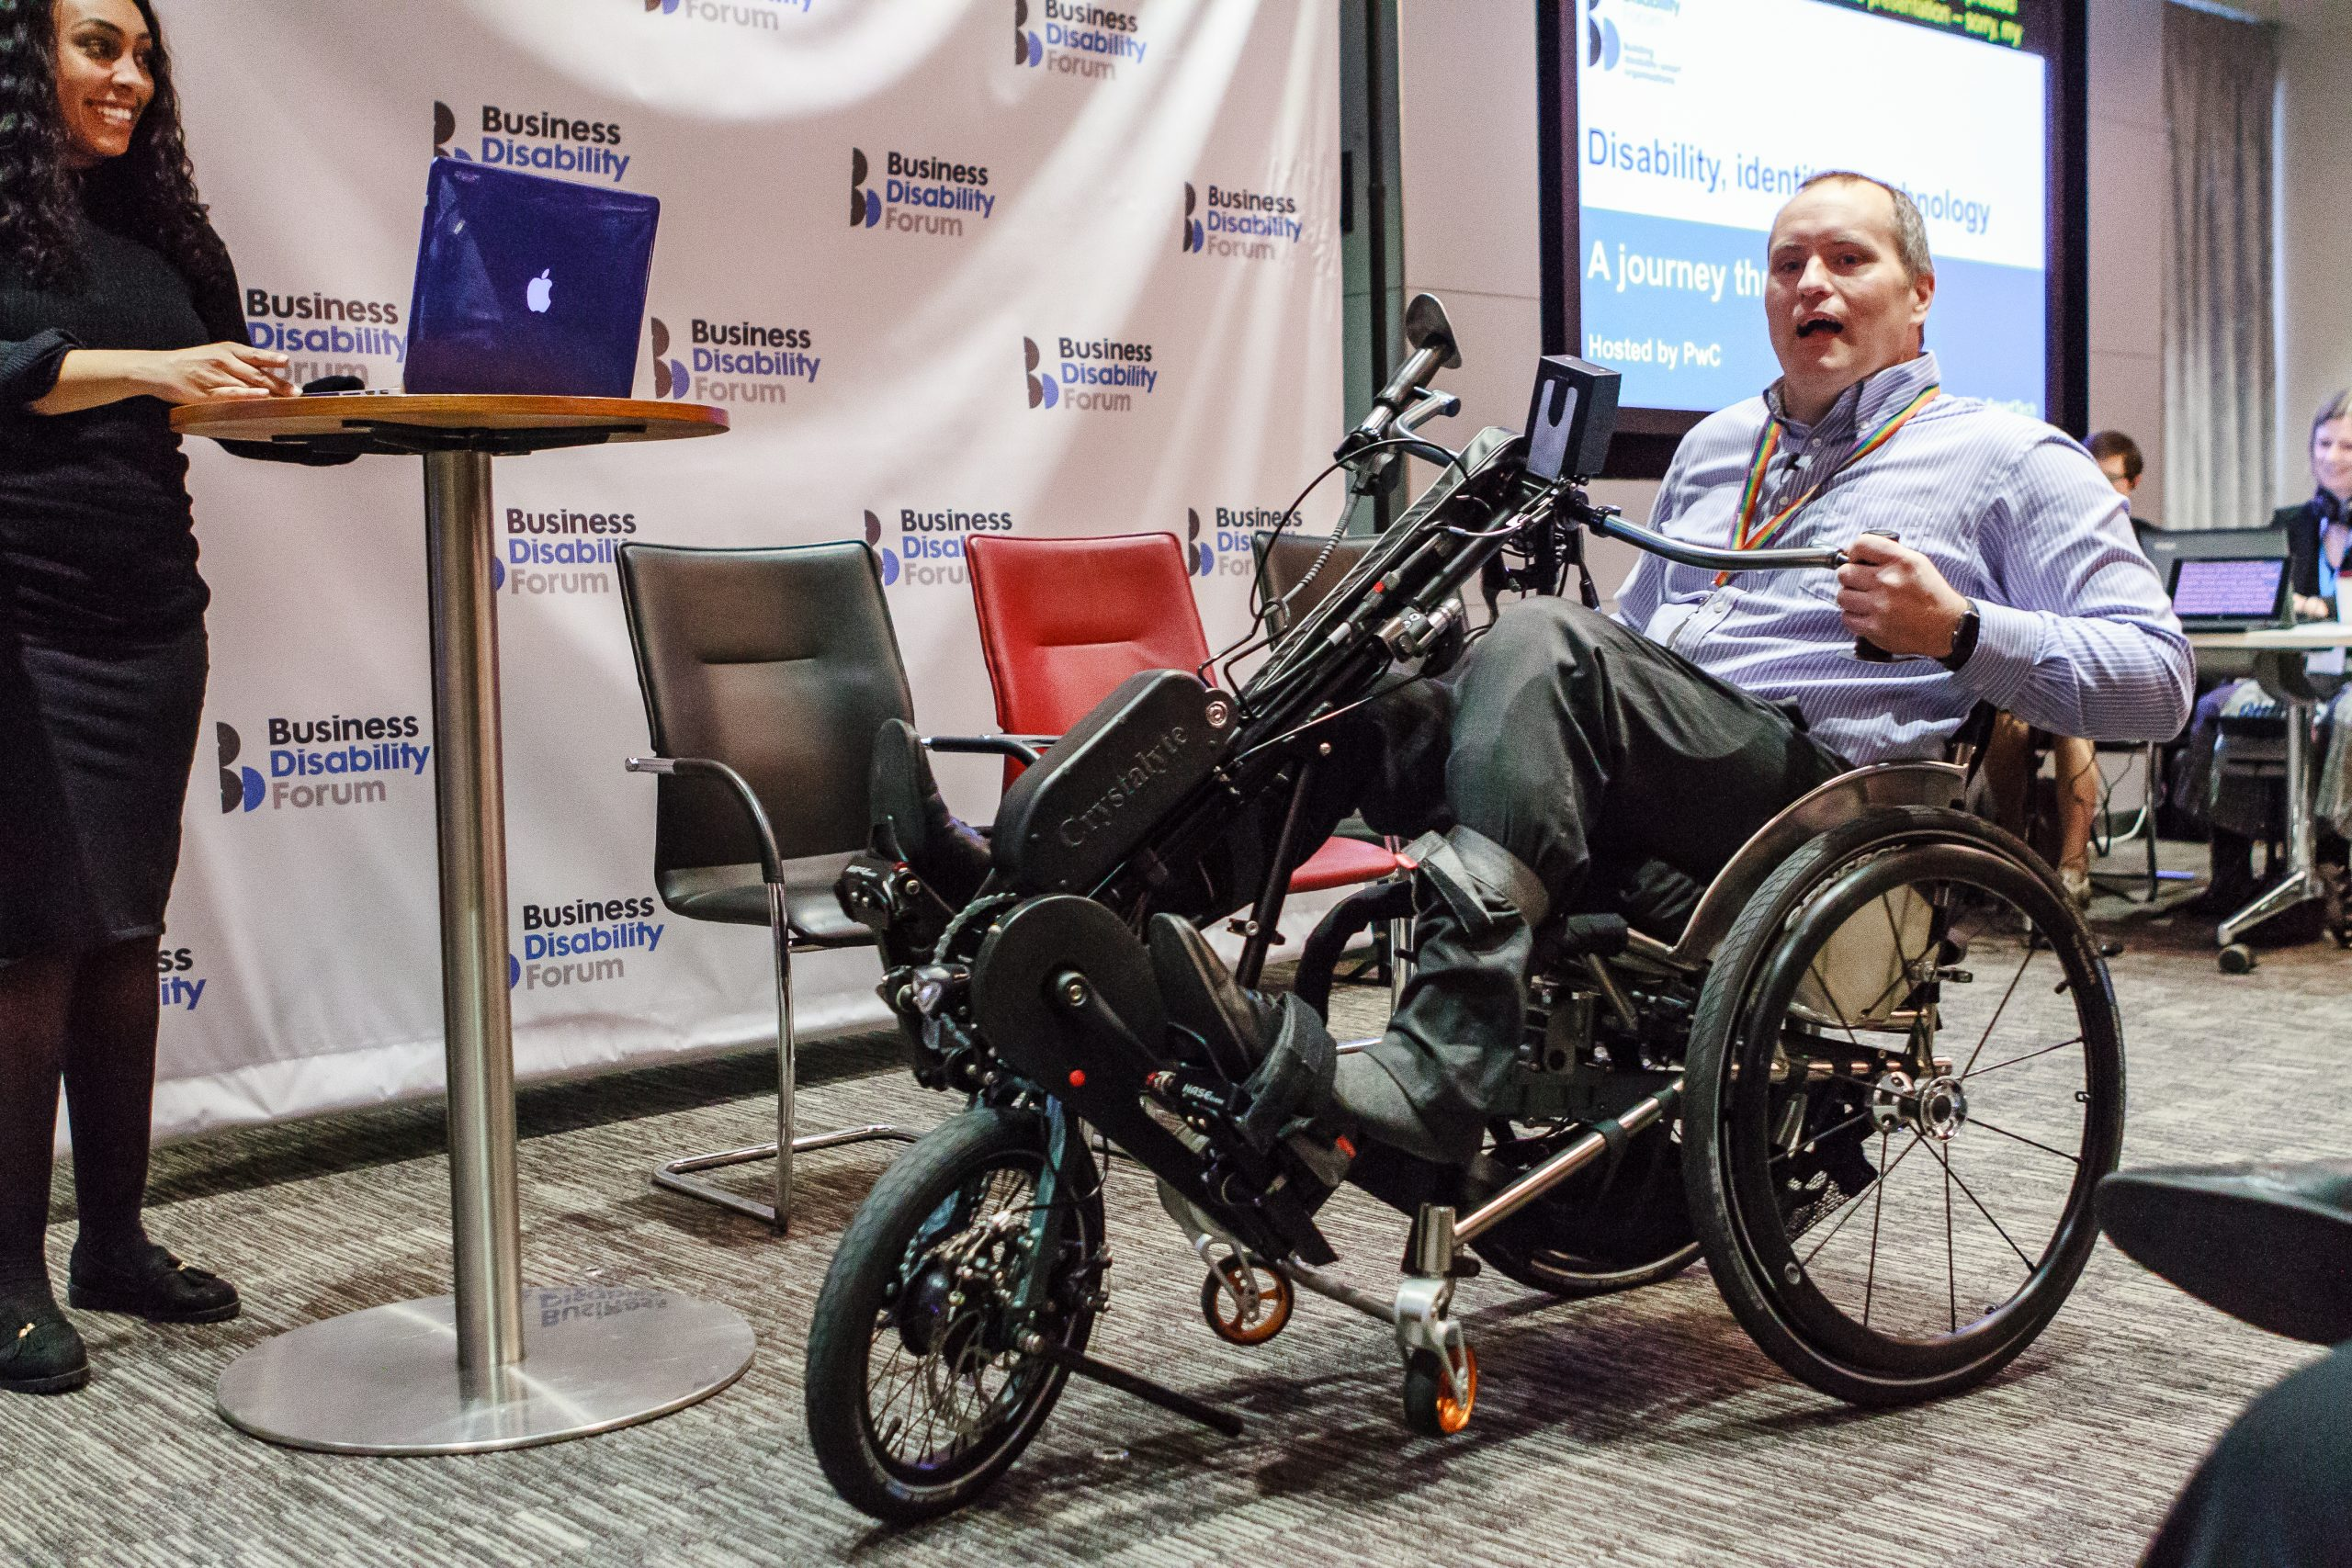 James Hallam, Controls Assurance at PwC, making an entrance on his electric-assisted handcycle at the event